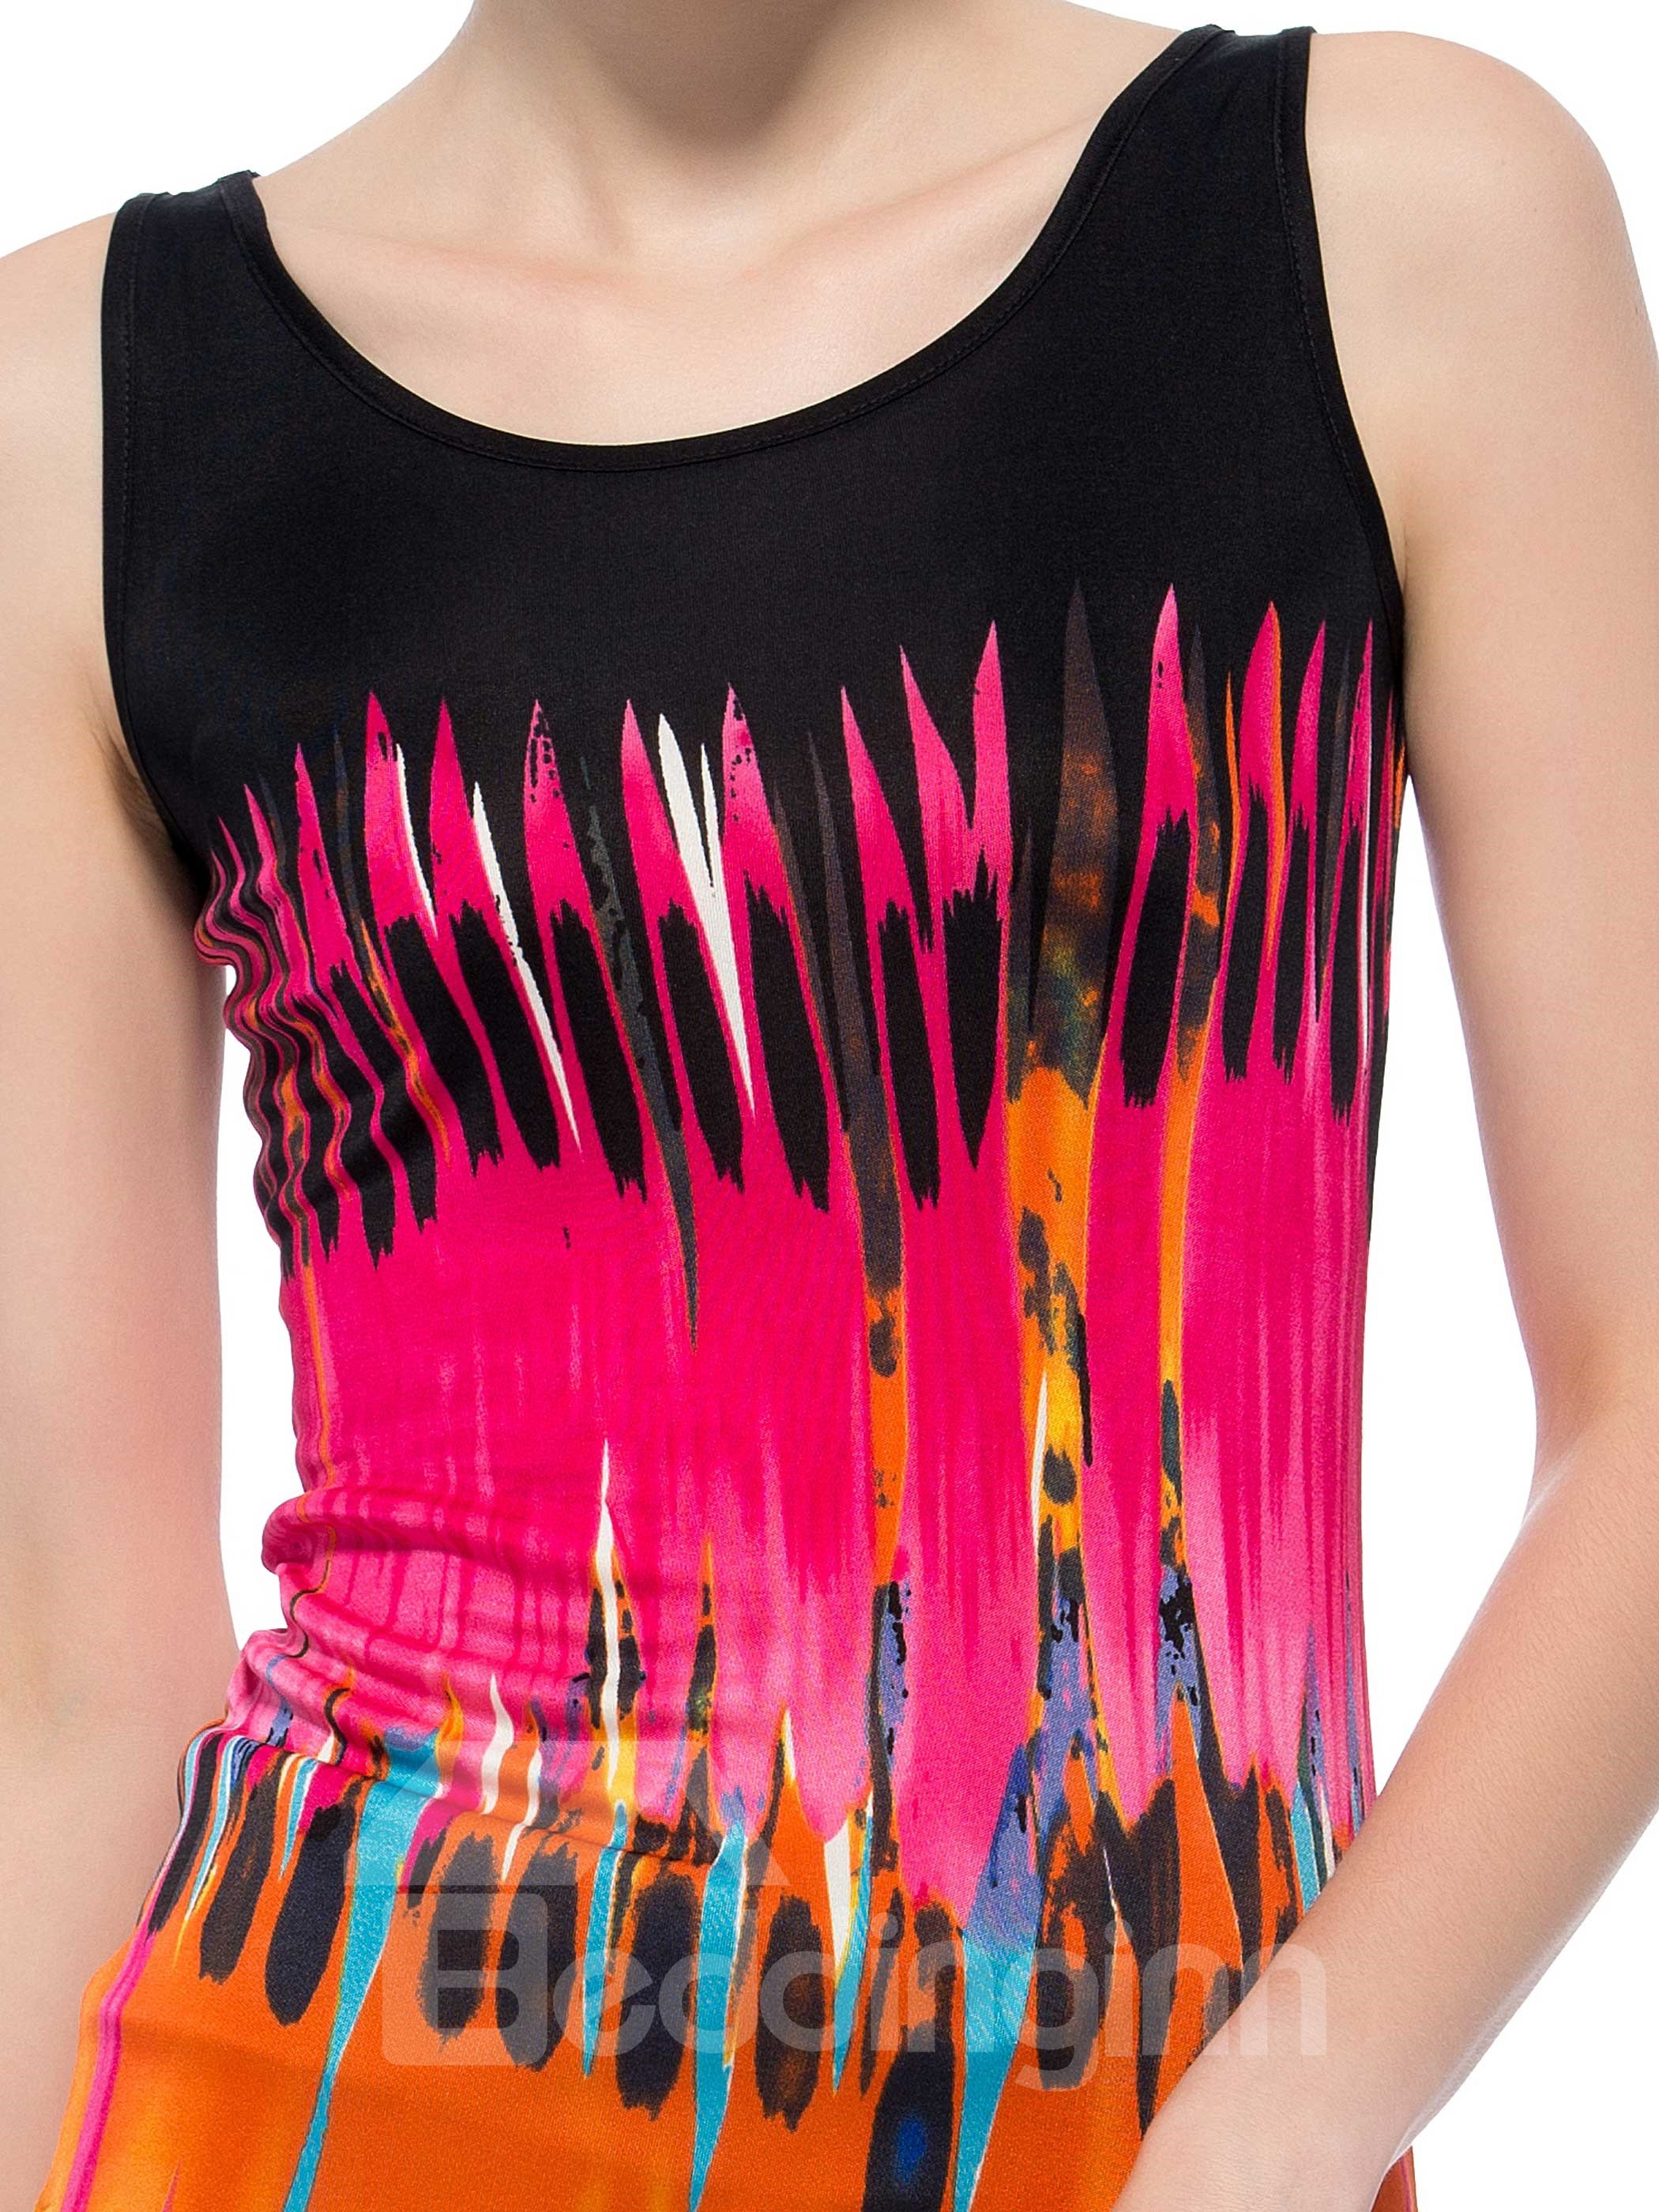 High Quality Pretty Floral Patterns Silk Camisole